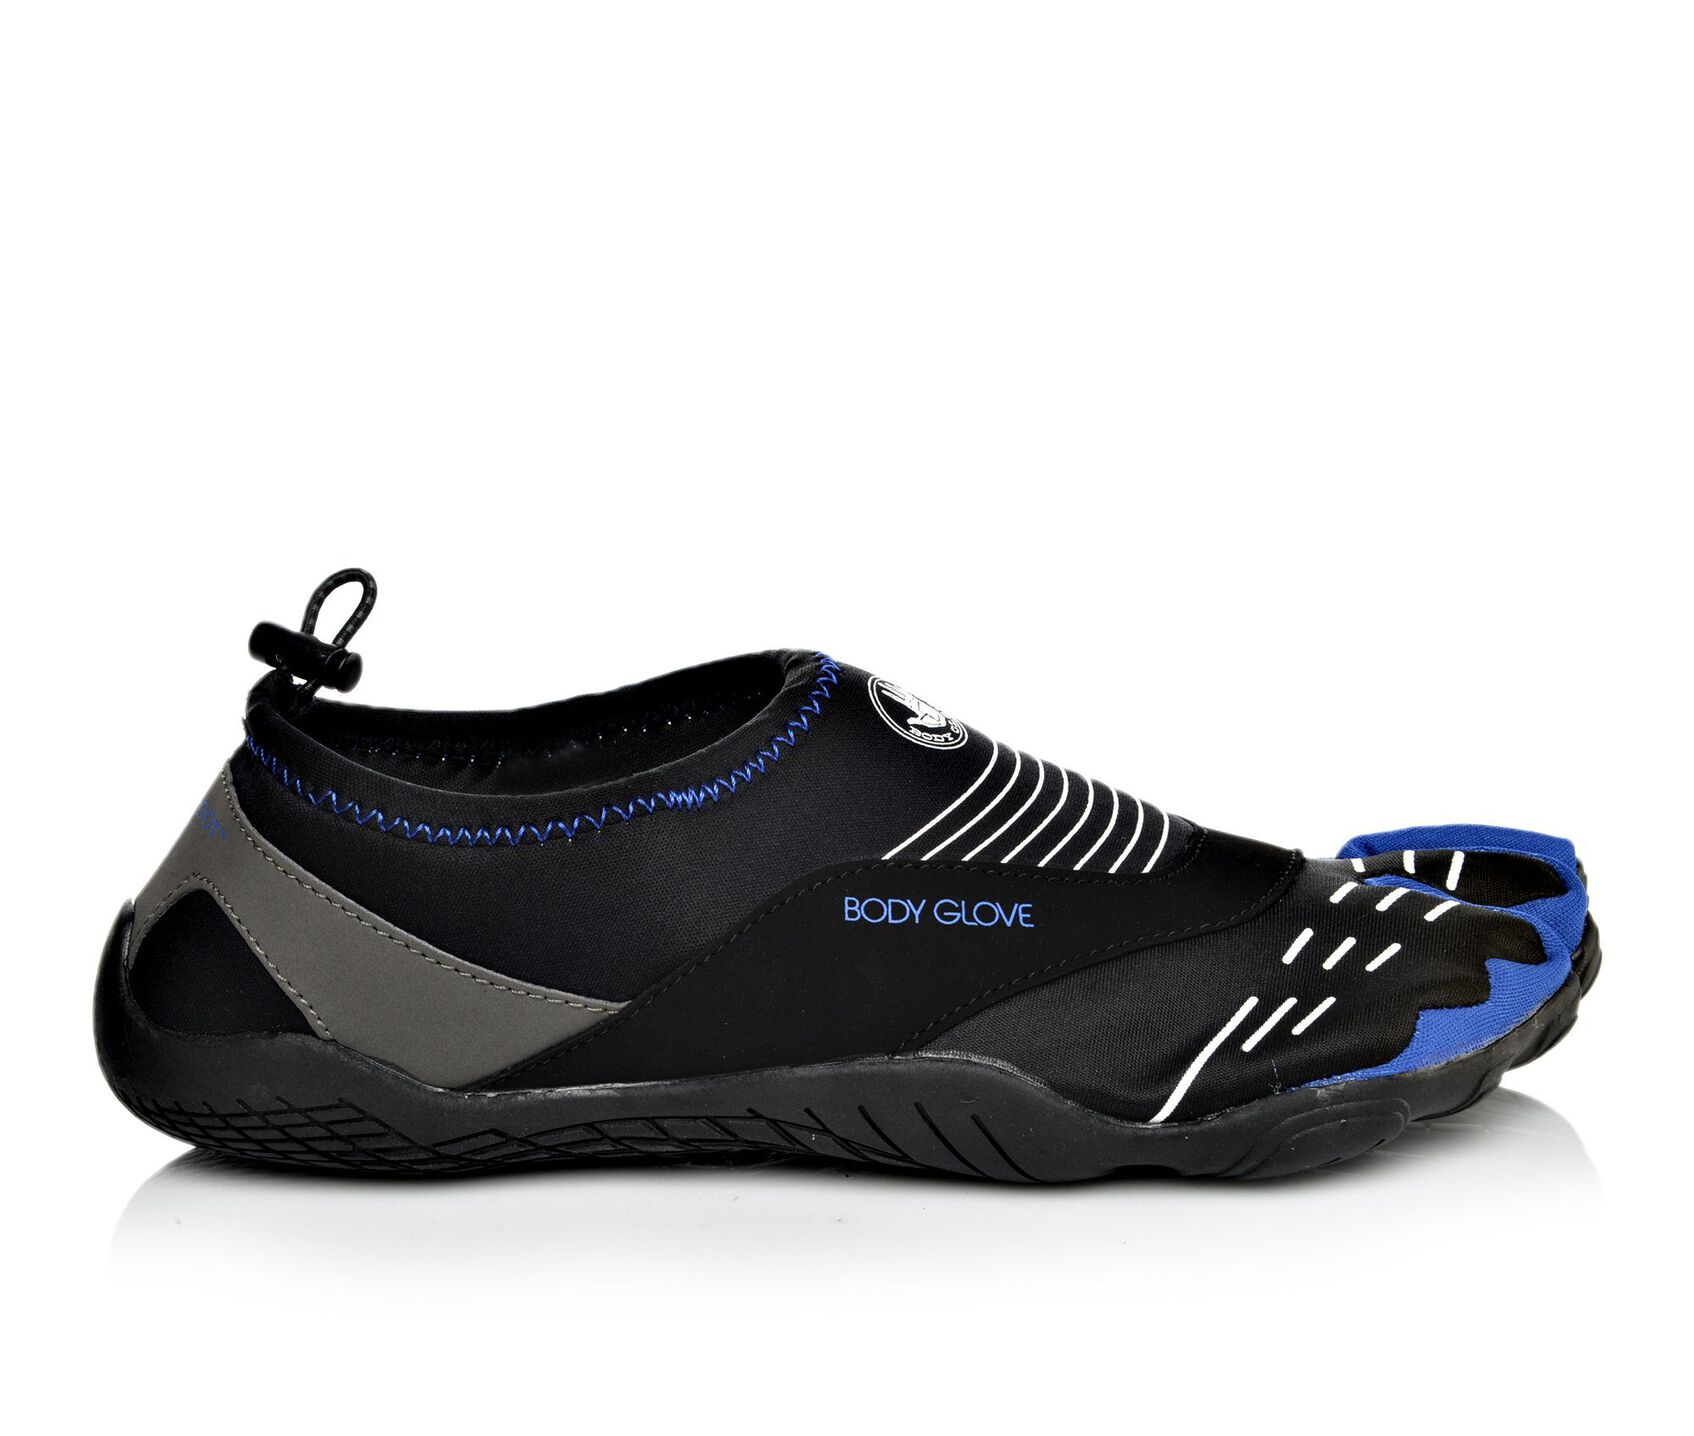 Compare the most helpful customer reviews of the best rated products in our Men's Sandals store. These products are shortlisted based on the overall star rating and the number of customer reviews received by each product in the store, and are refreshed regularly.